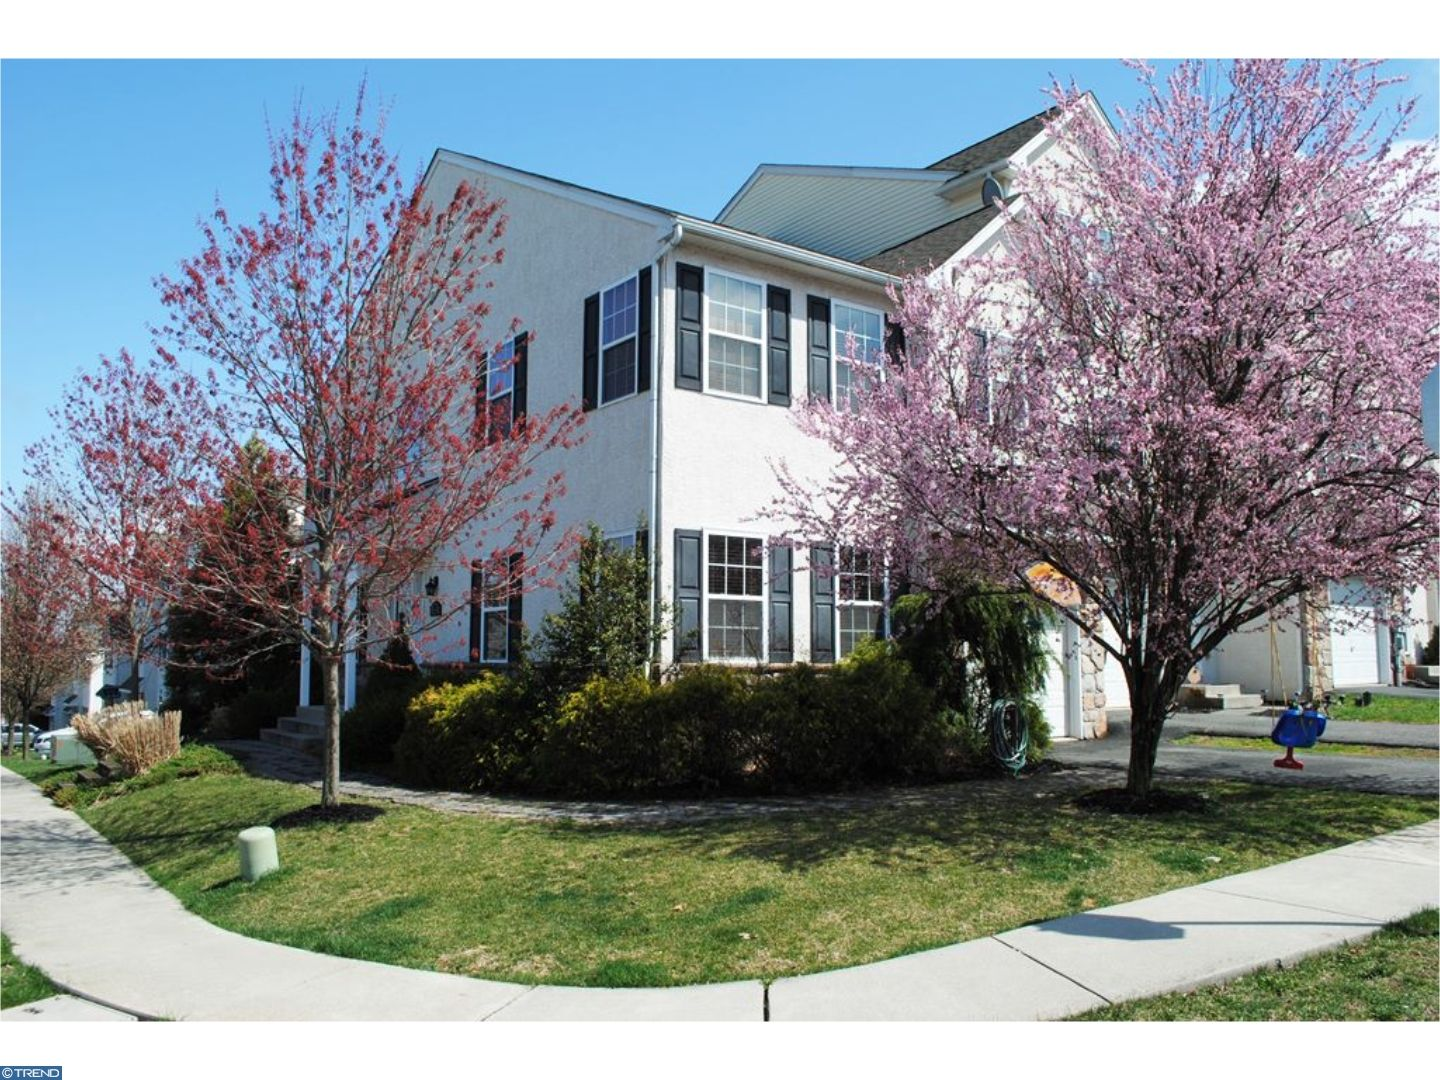 Pottstown Home, PA Real Estate Listing